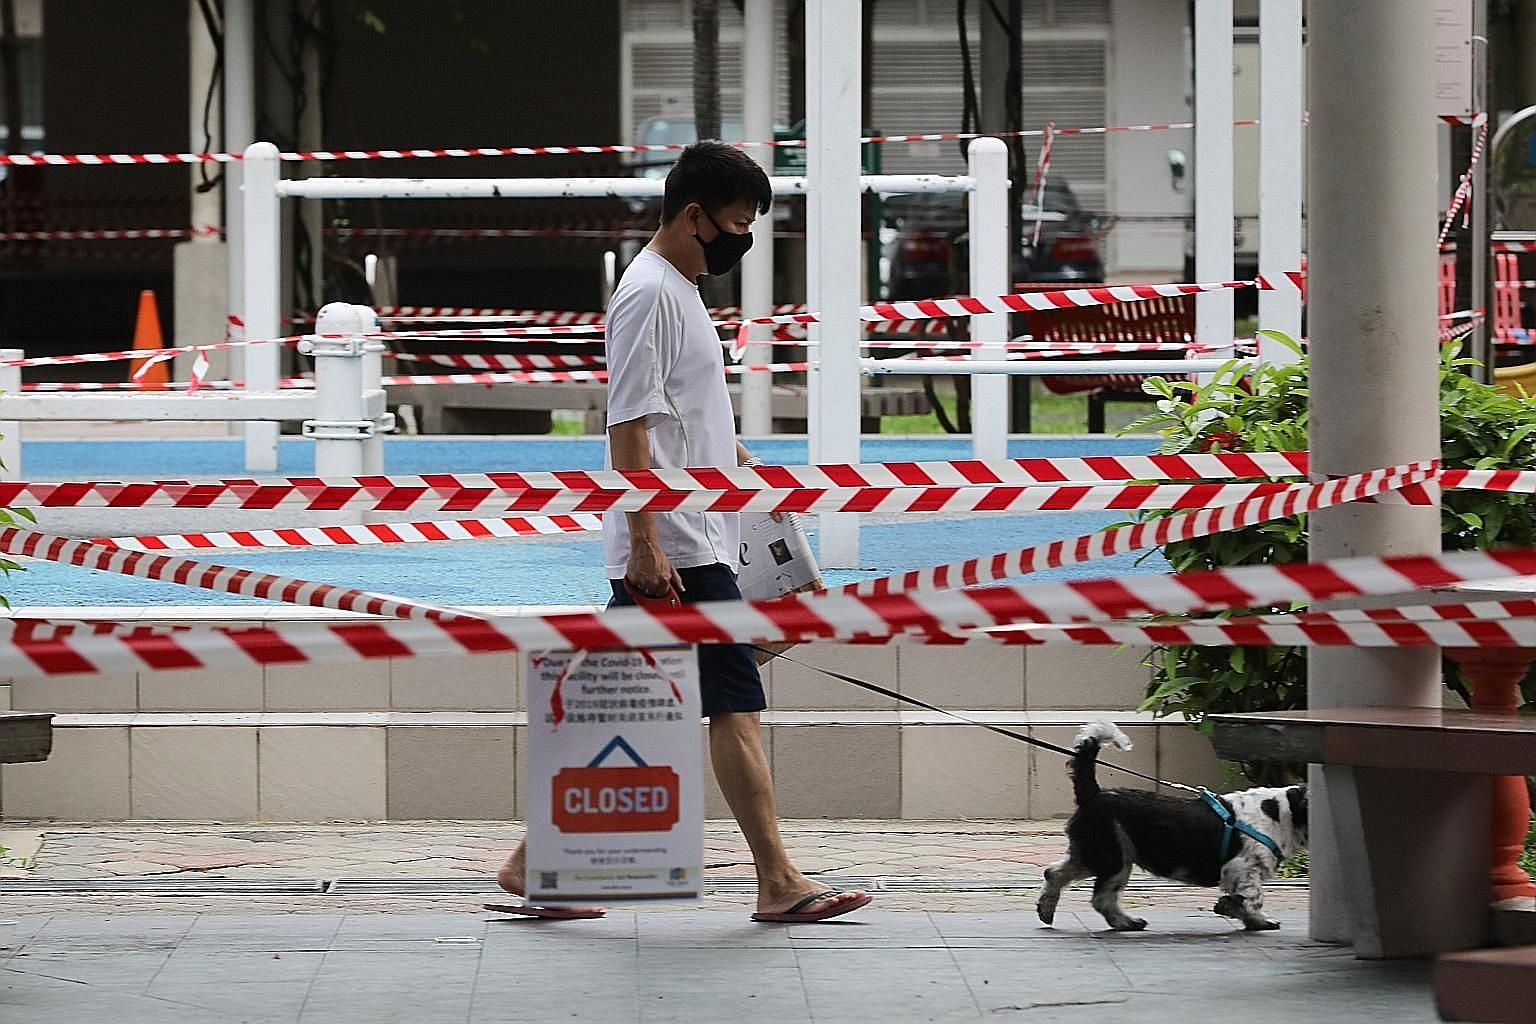 A man walking his dog in Jalan Sultan yesterday. Evidence suggests that workers providing essential services are getting infected.